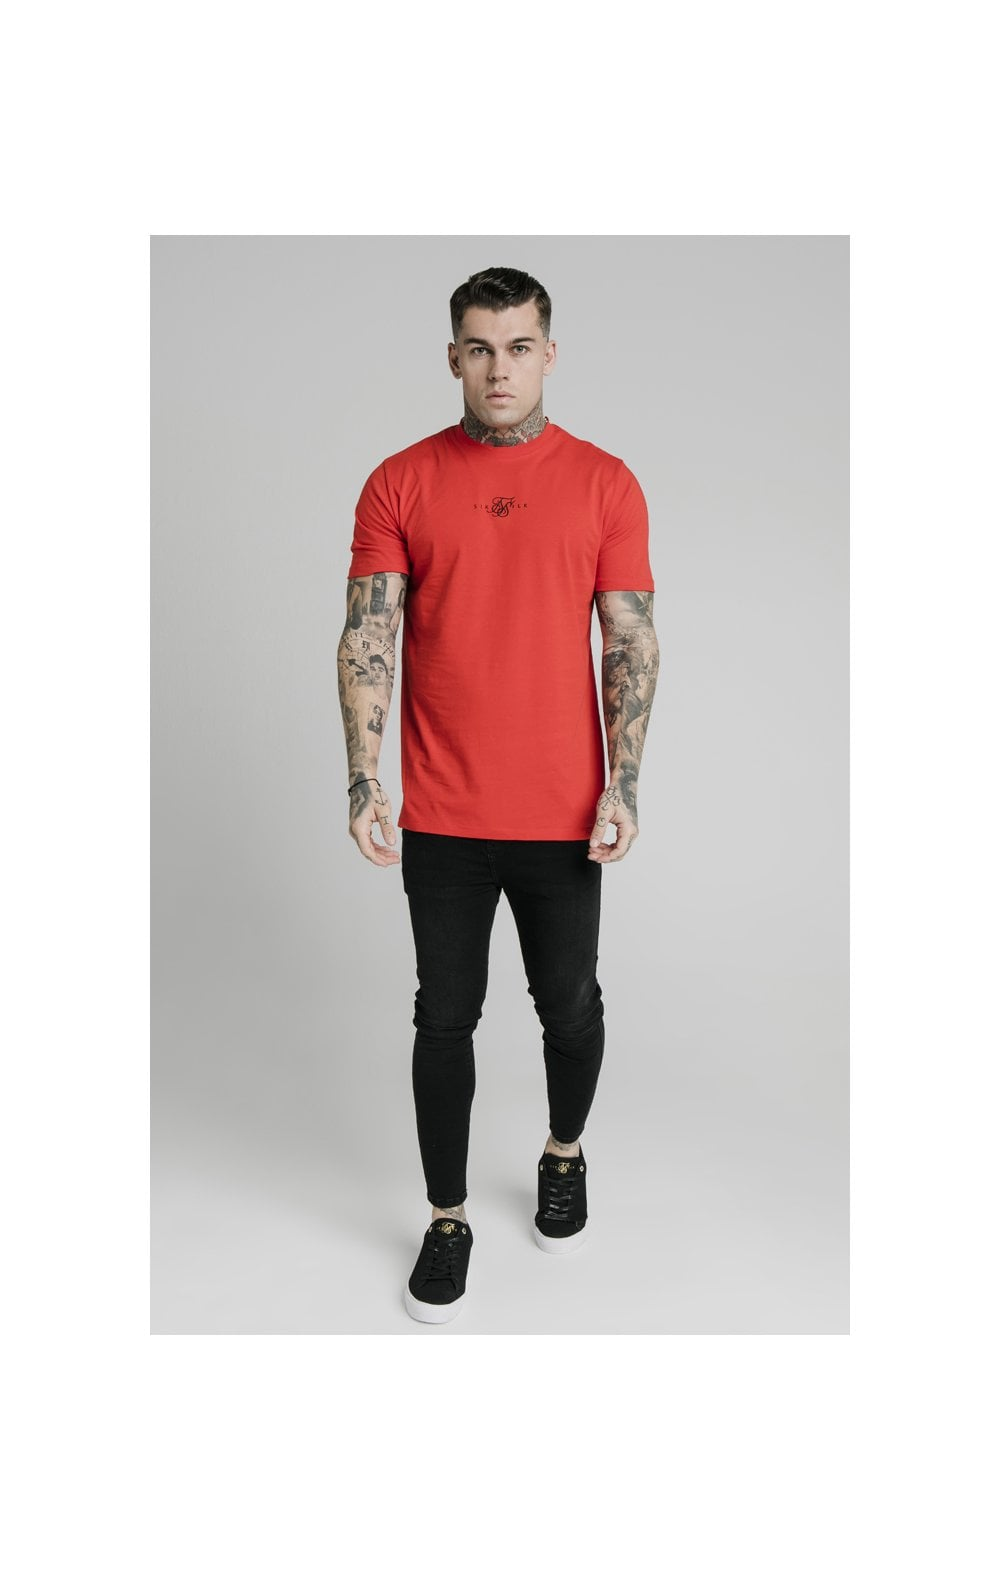 SikSilk S/S Square Hem Tee – Red (3)